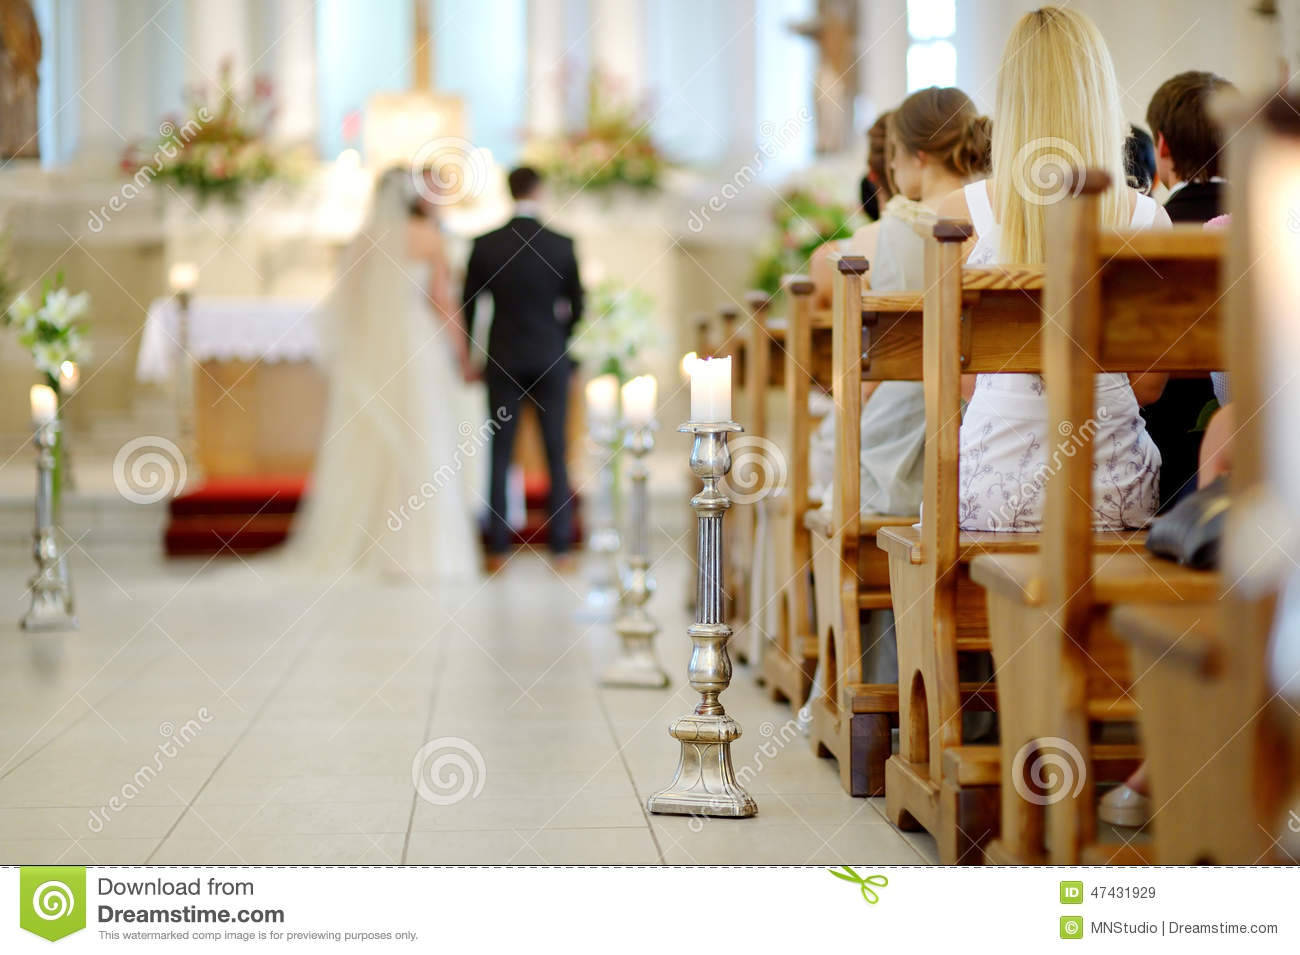 Wedding decoration church stock photos royalty free pictures beautiful candle wedding decoration in a church during wedding ceremony royalty free stock images junglespirit